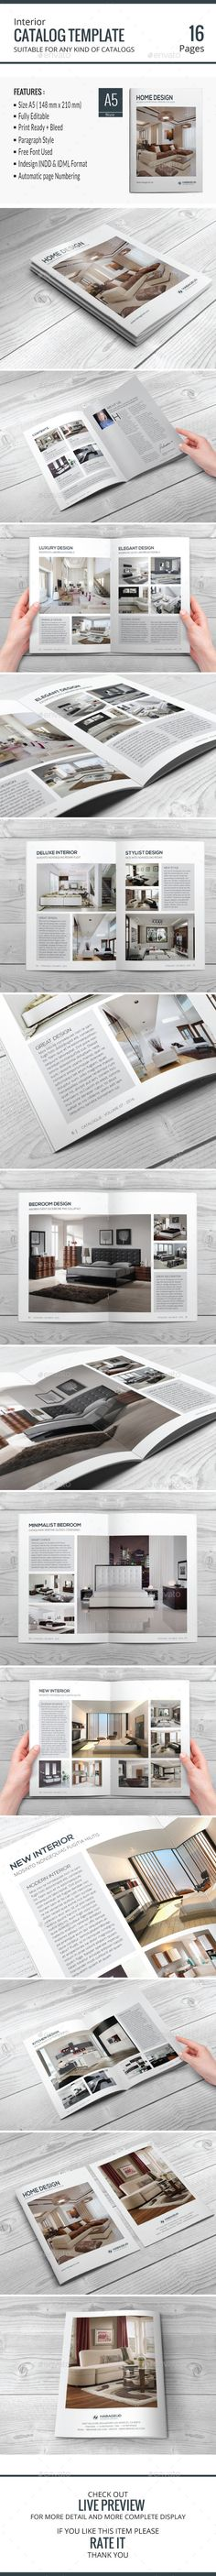 Catalog Template Vol. 07 http://graphicriver.net/item/catalog-template-vol-07/9064390?WT.ac=portfolio&WT.z_author=habageud